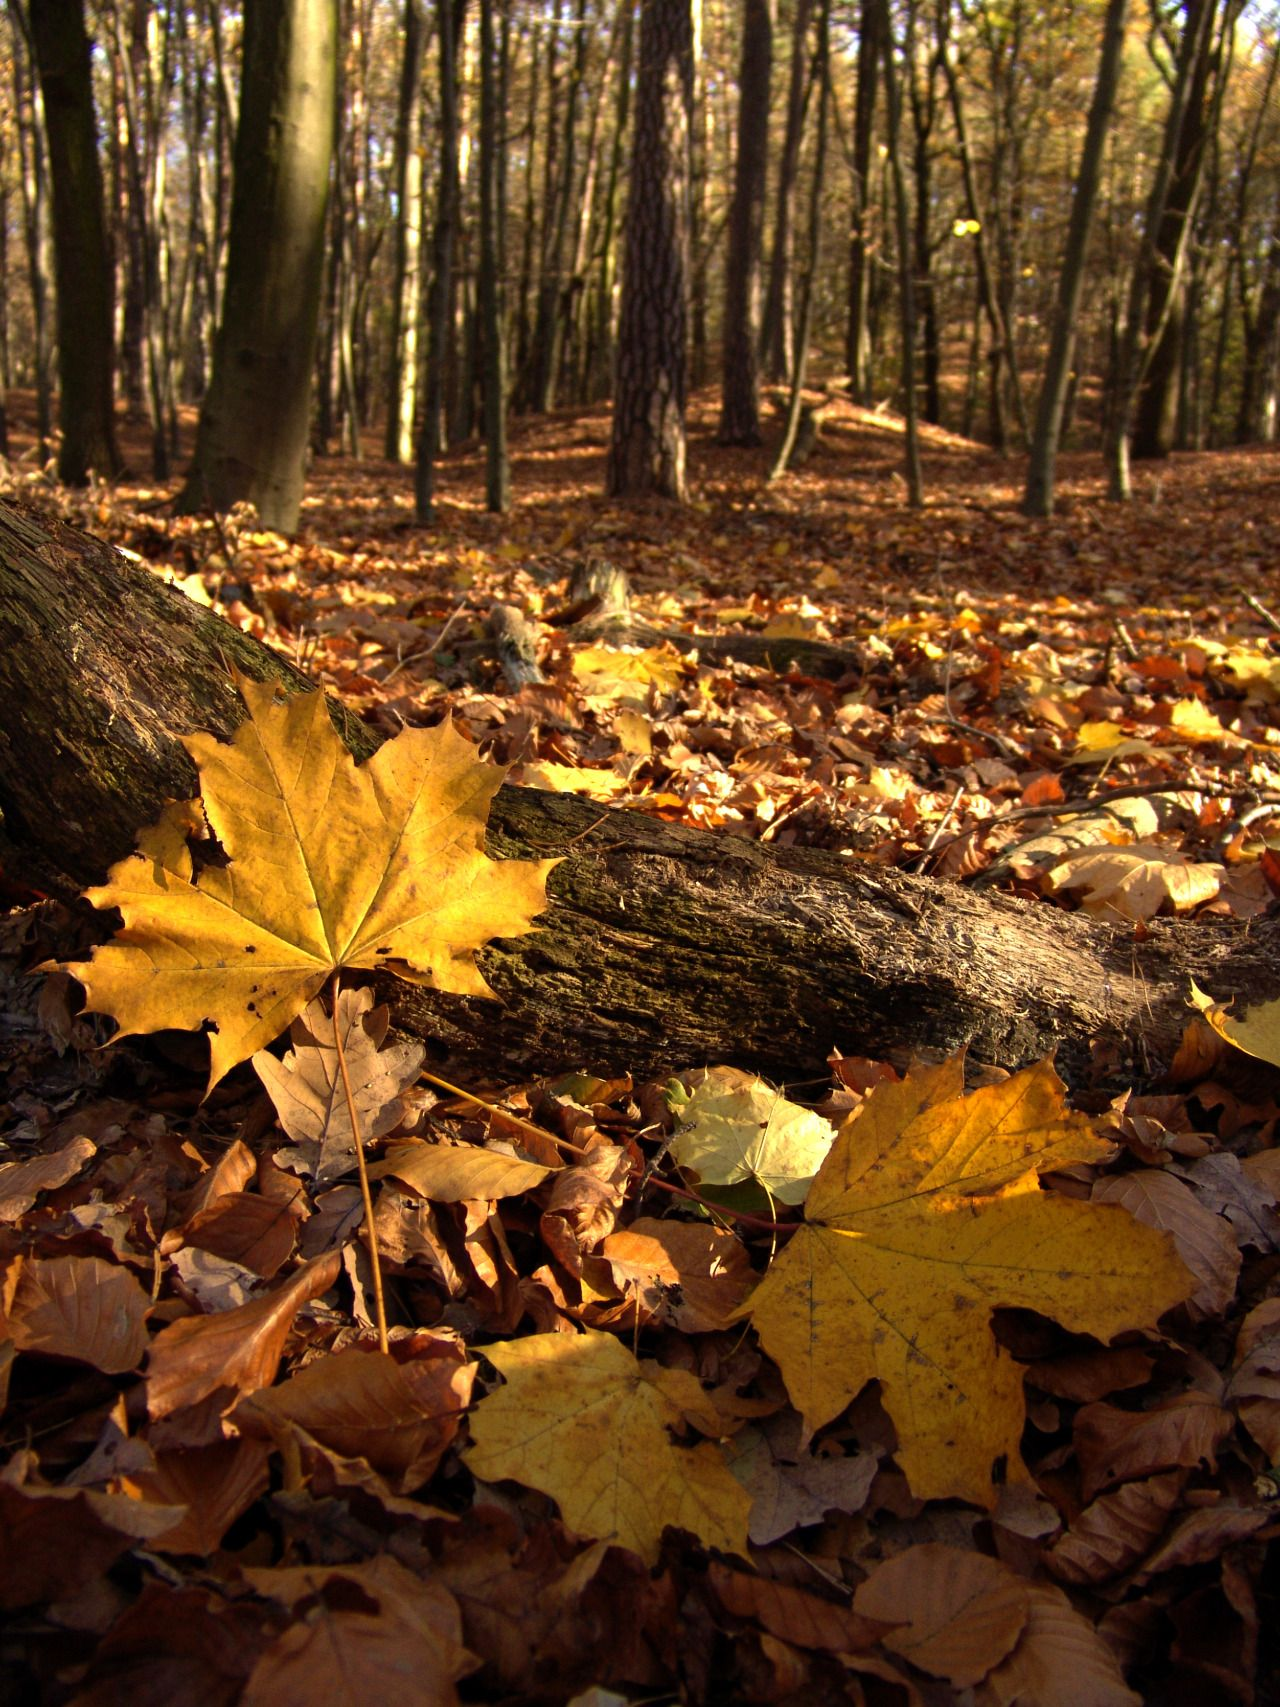 Pic:by denny bitte - #autumn #forest #leaves #nature #on #original #photographers #photography #tumblr